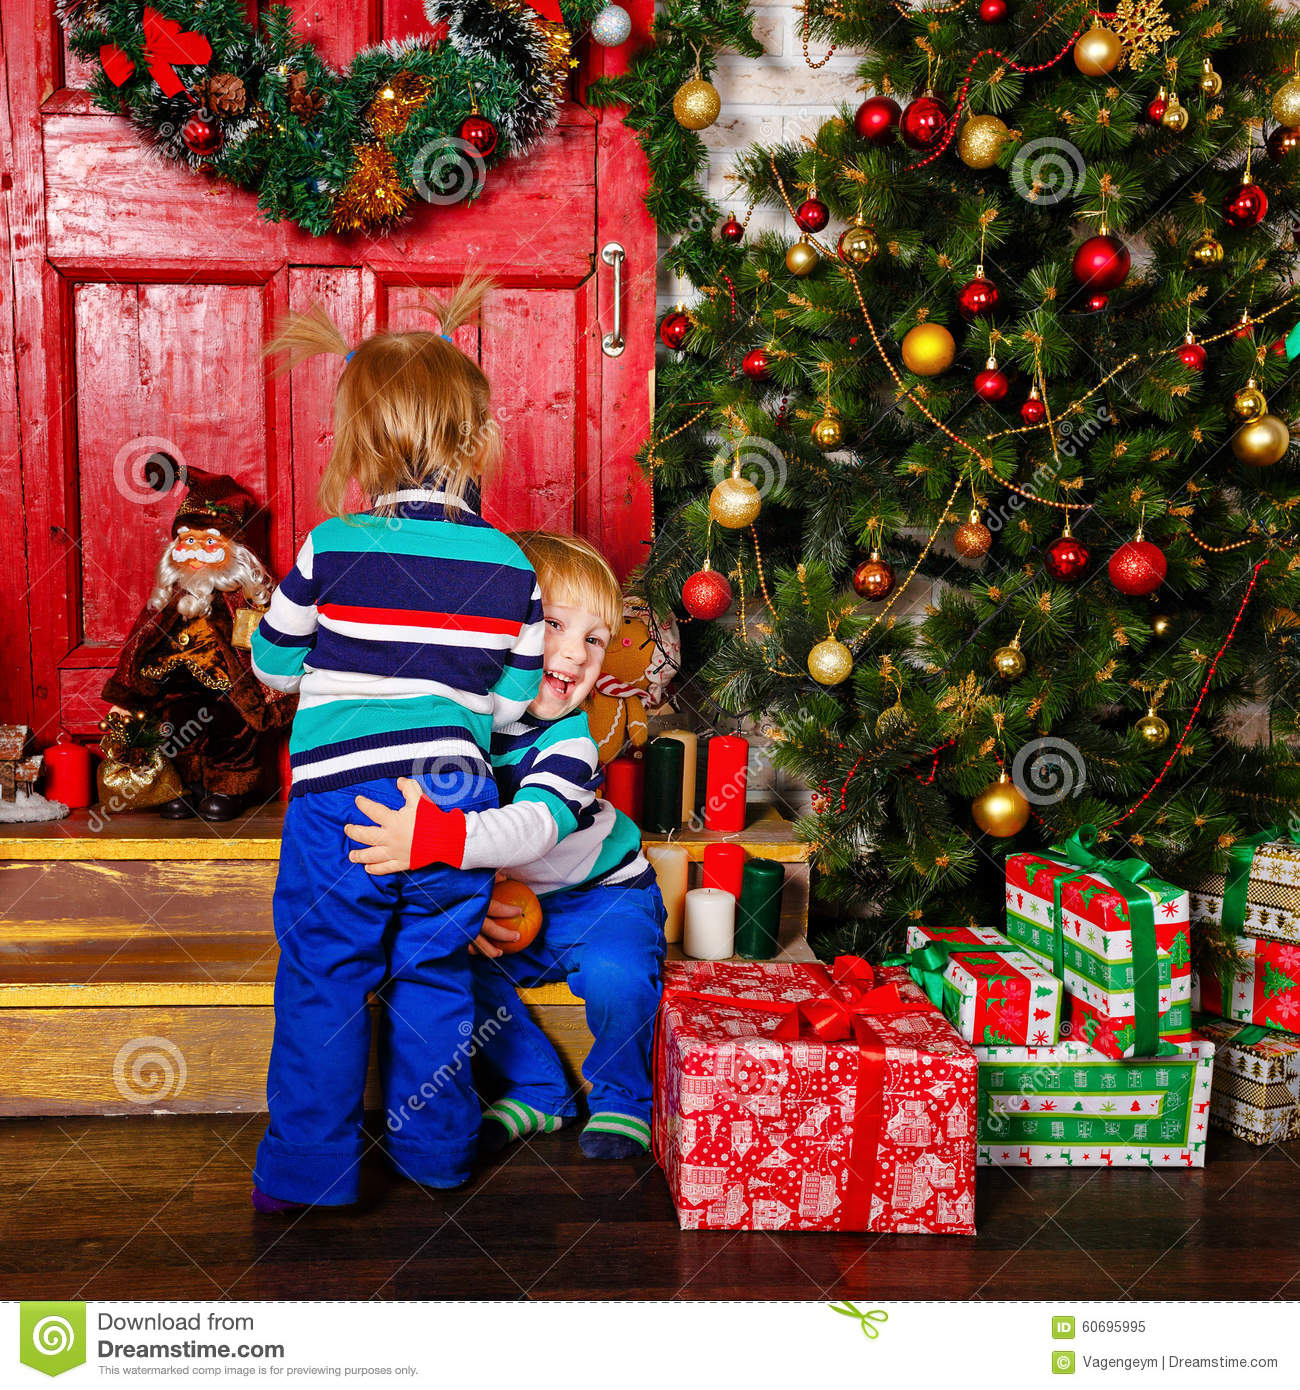 download brother hugging his sister near christmas tree stock image image of cheerful - What To Get My Sister For Christmas